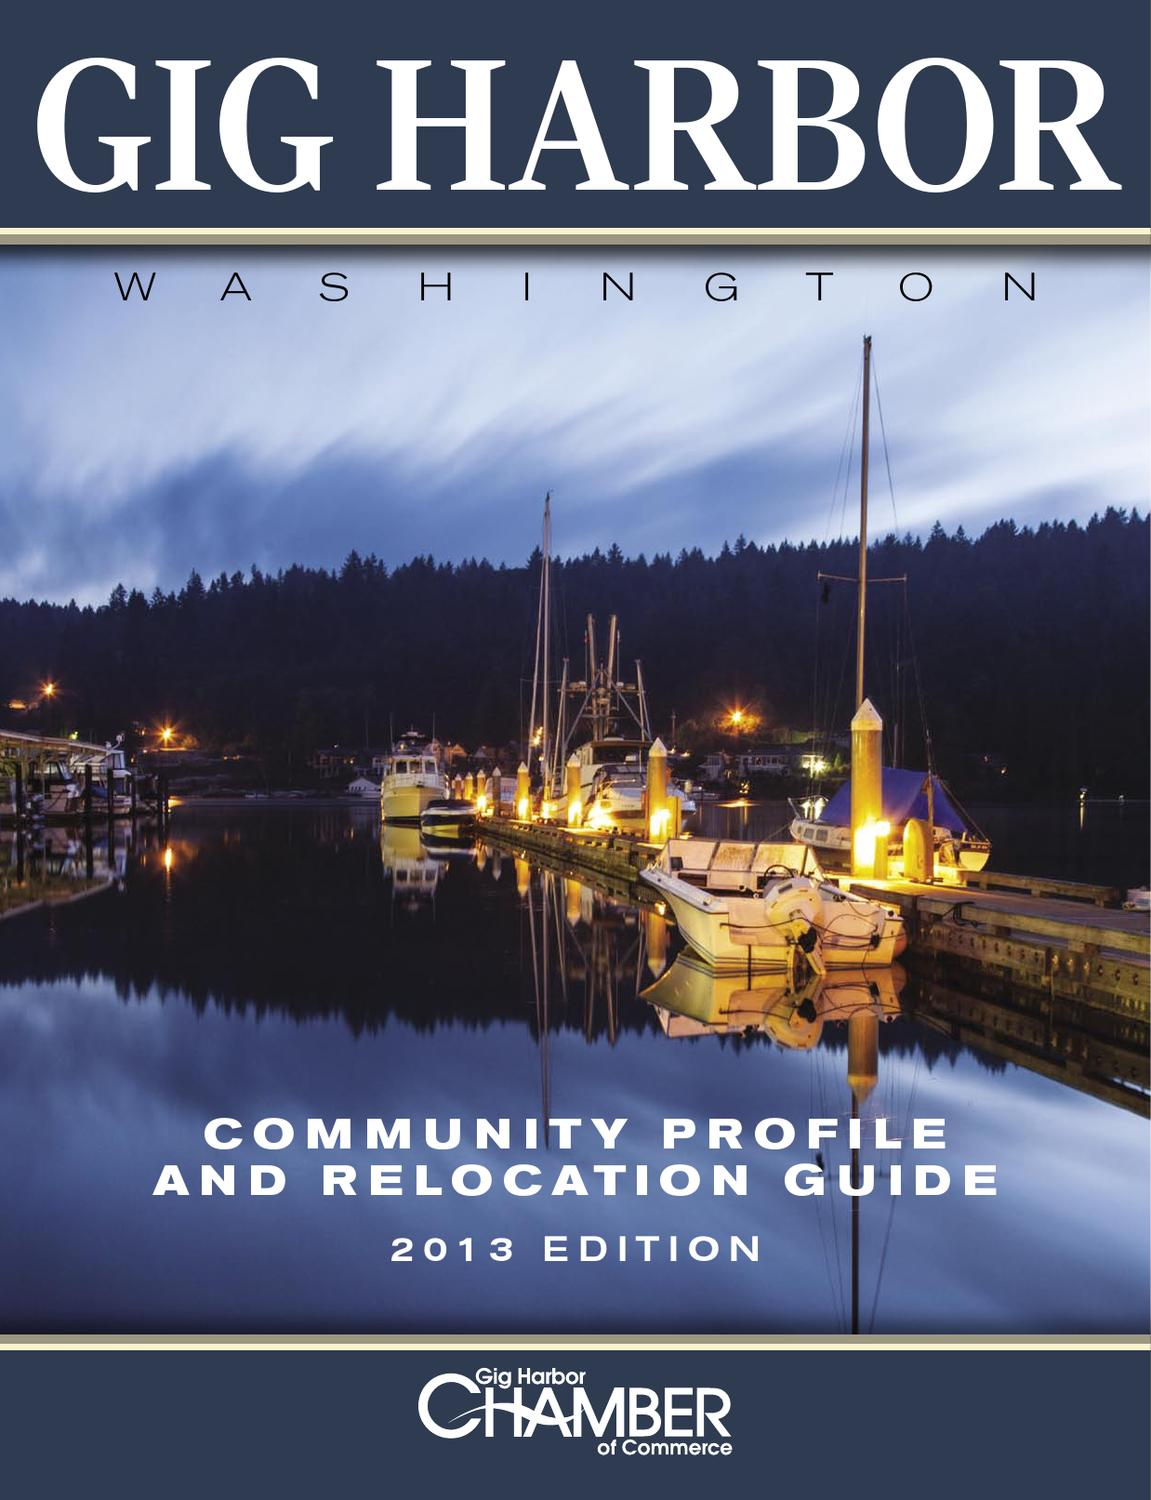 Gig Harbor Chamber Relocation Guide By Jim Appelgate Issuu